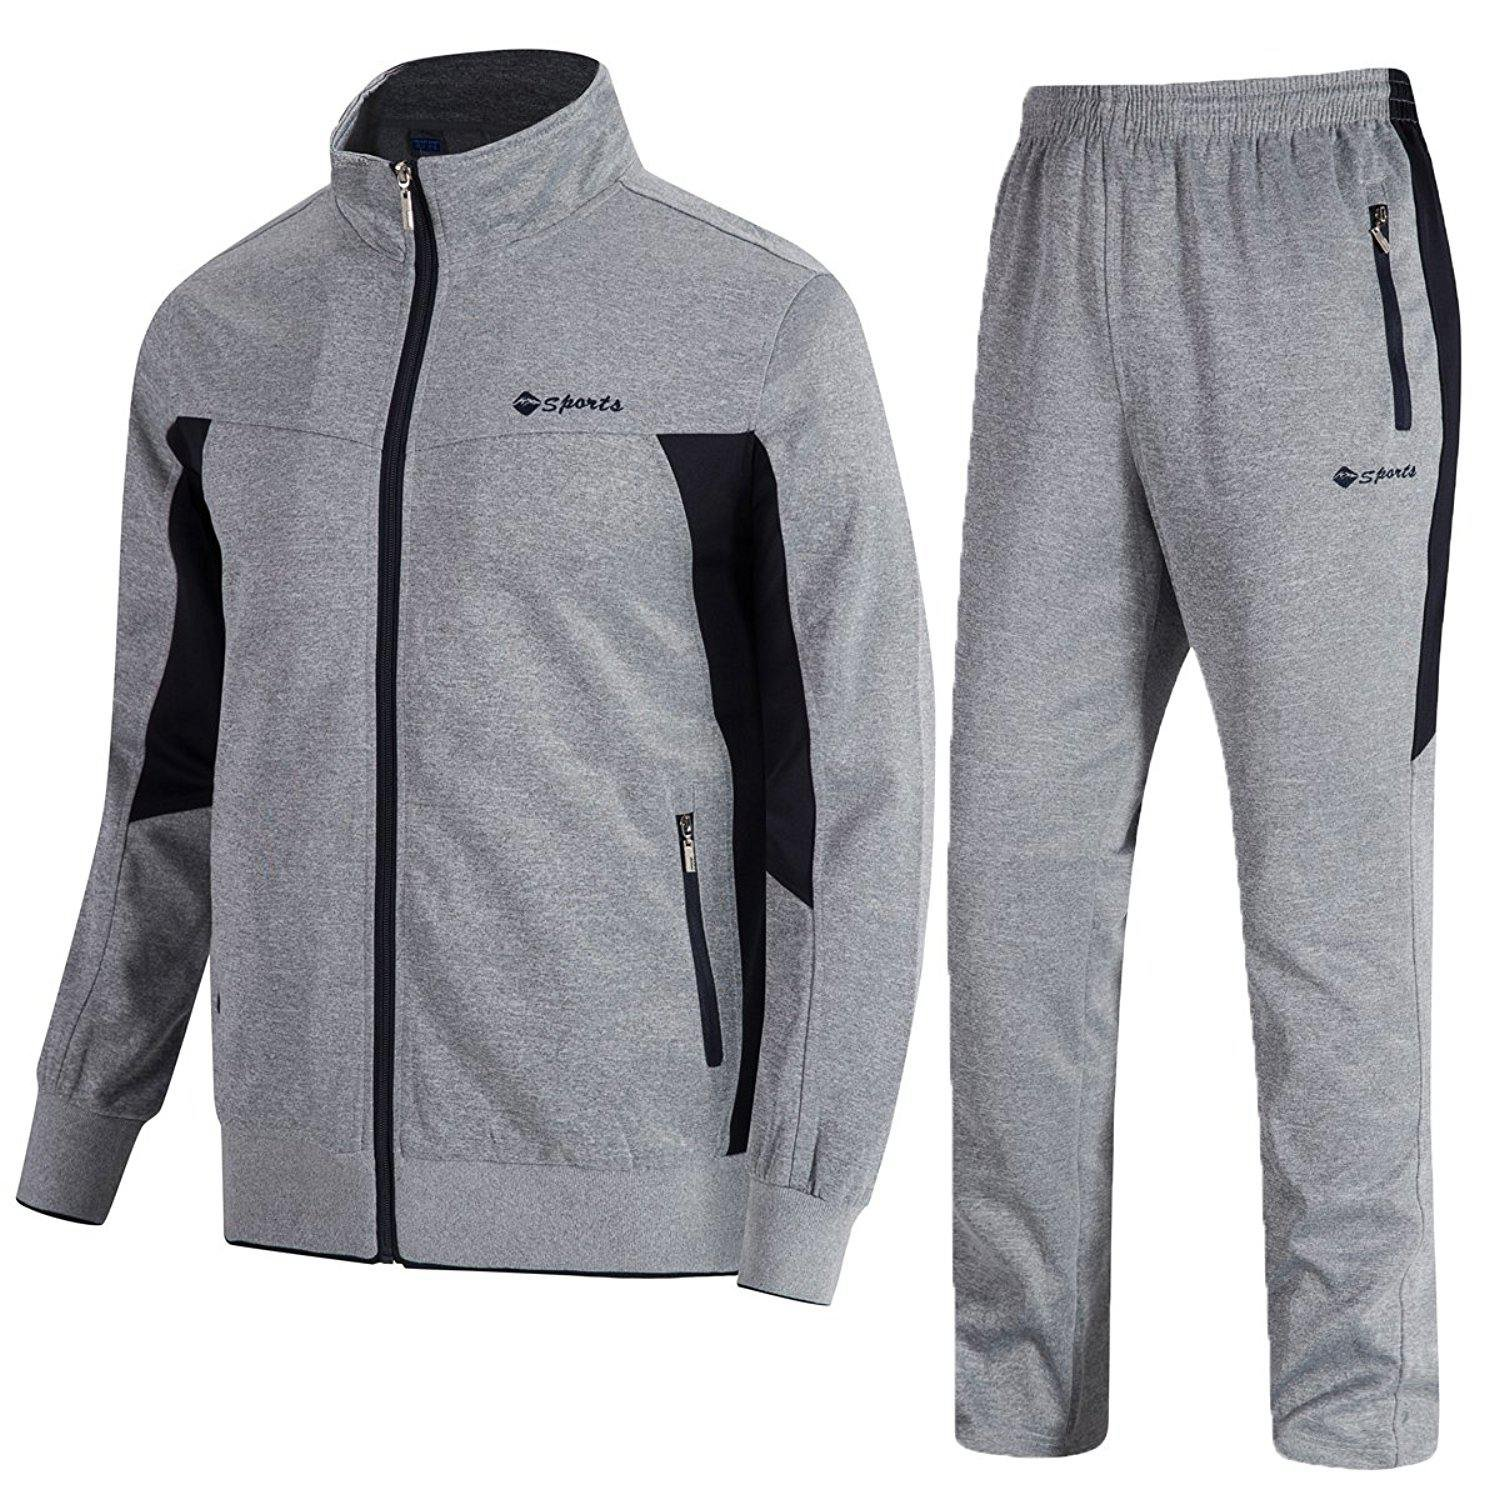 TBMPOY Men's 2 Piece Jacket & Pants Woven Warm Jogging Gym Activewear(Grey,US XL)